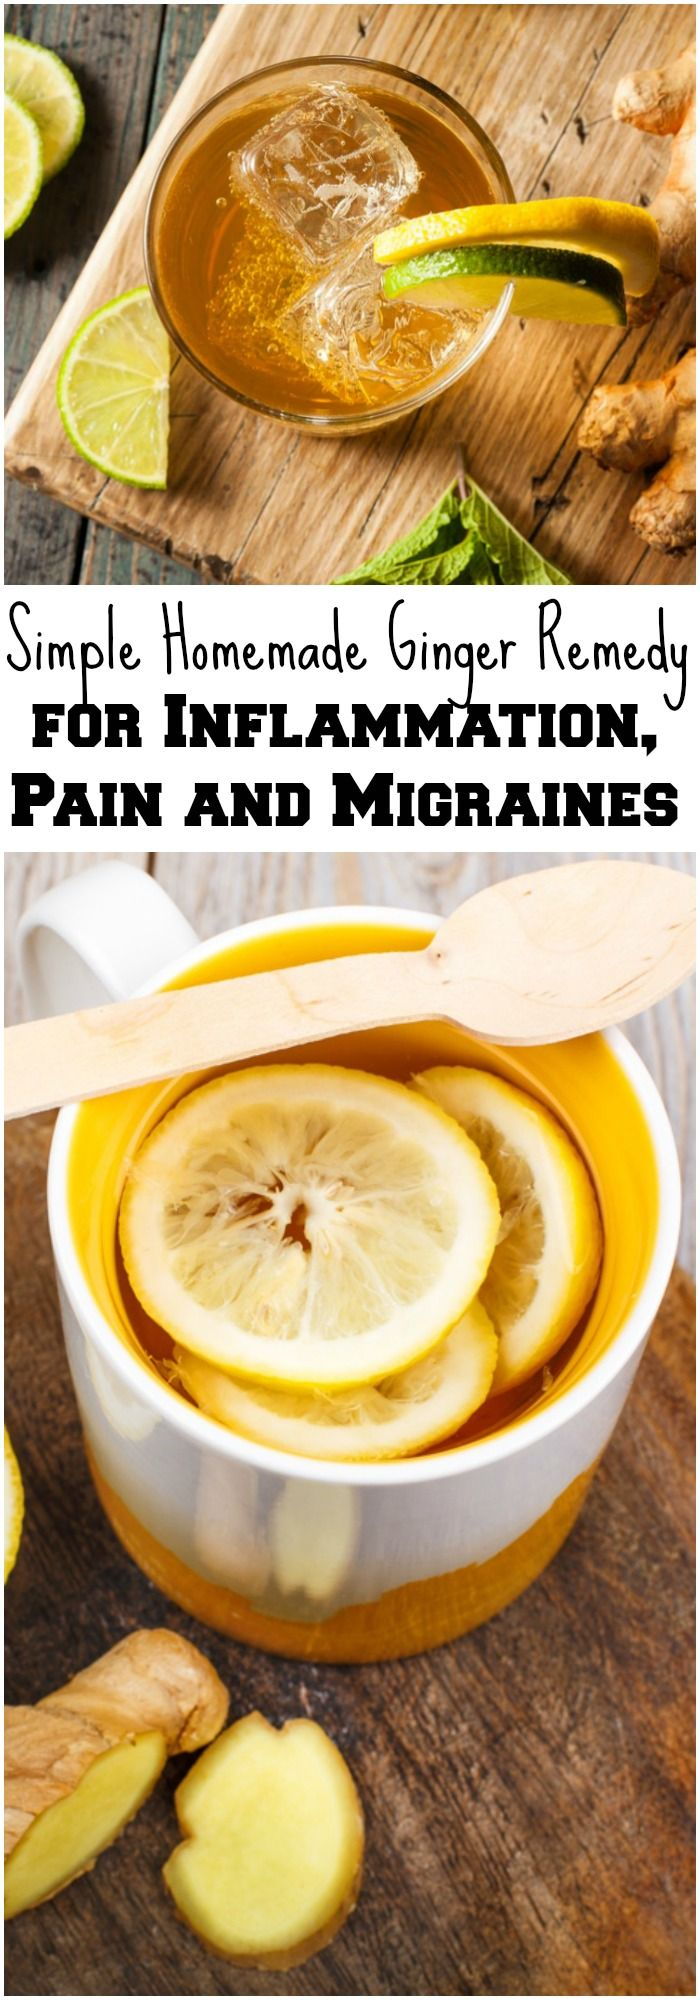 Simple Homemade Ginger Remedy for Inflammation, Pain and Migraines